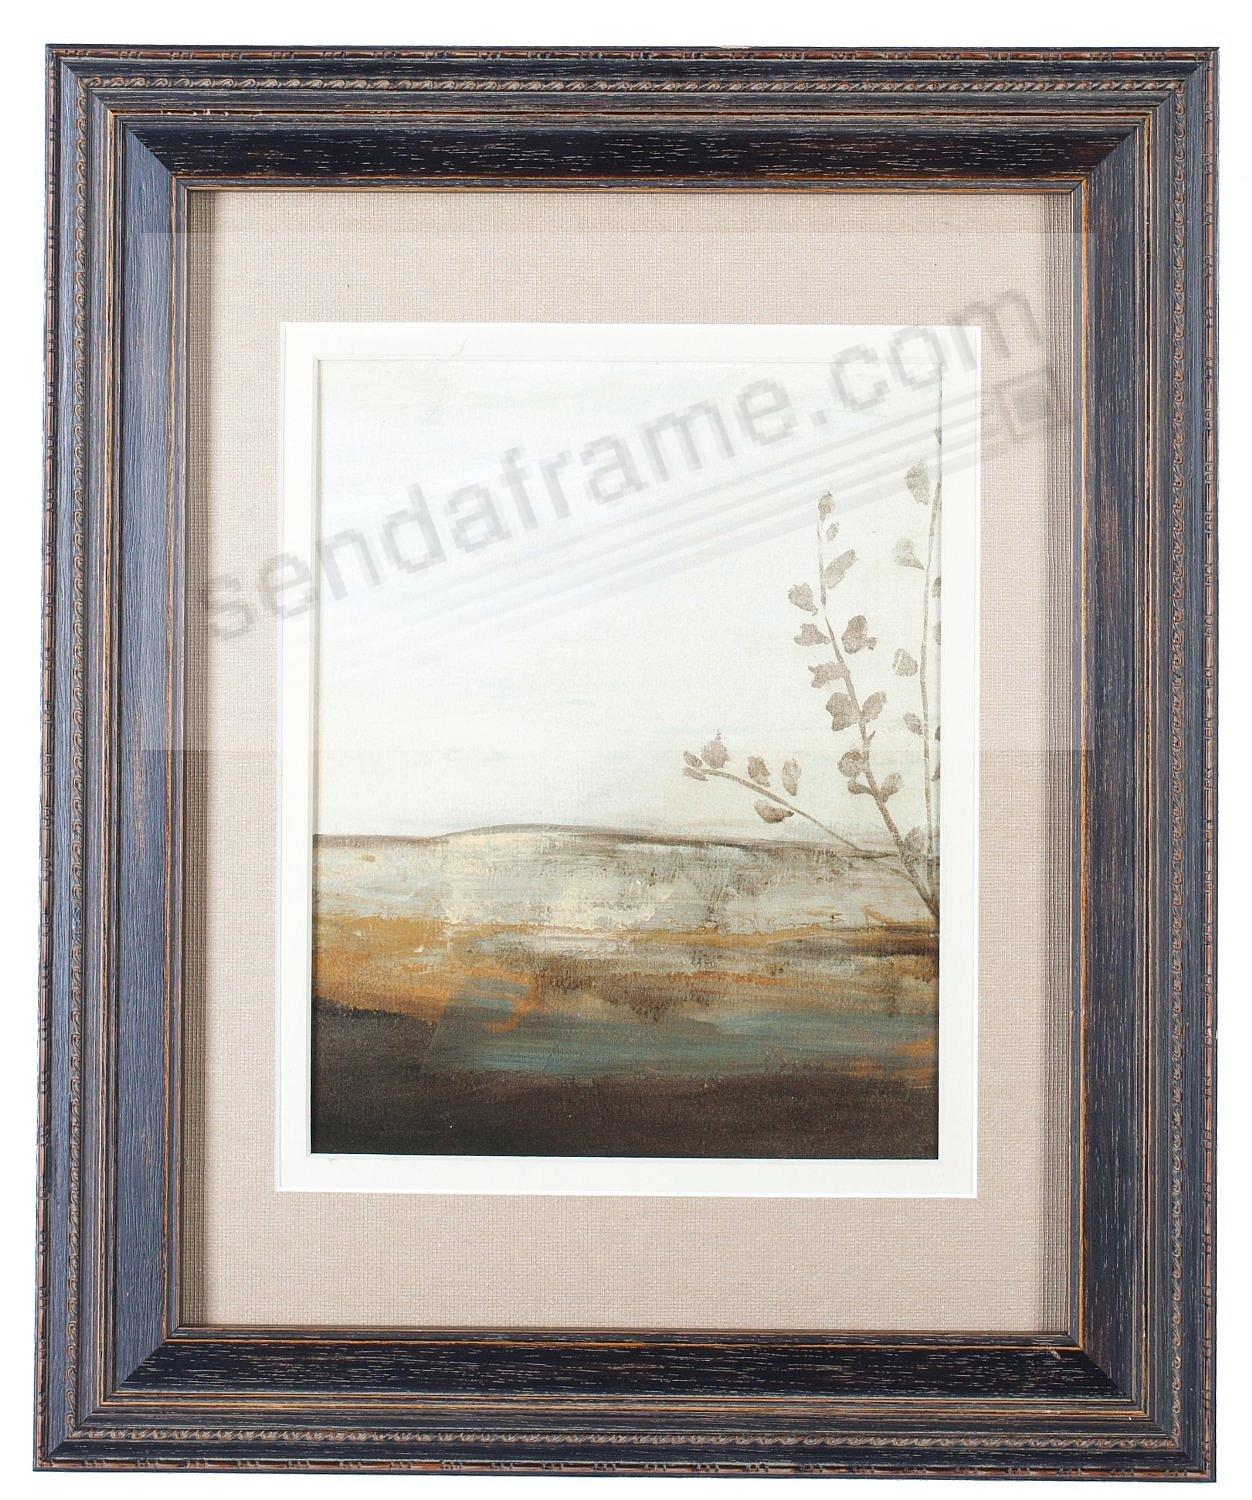 Distressed Brown MILAN matted wood frame 8x10/11x14 from ARTCARE by ...